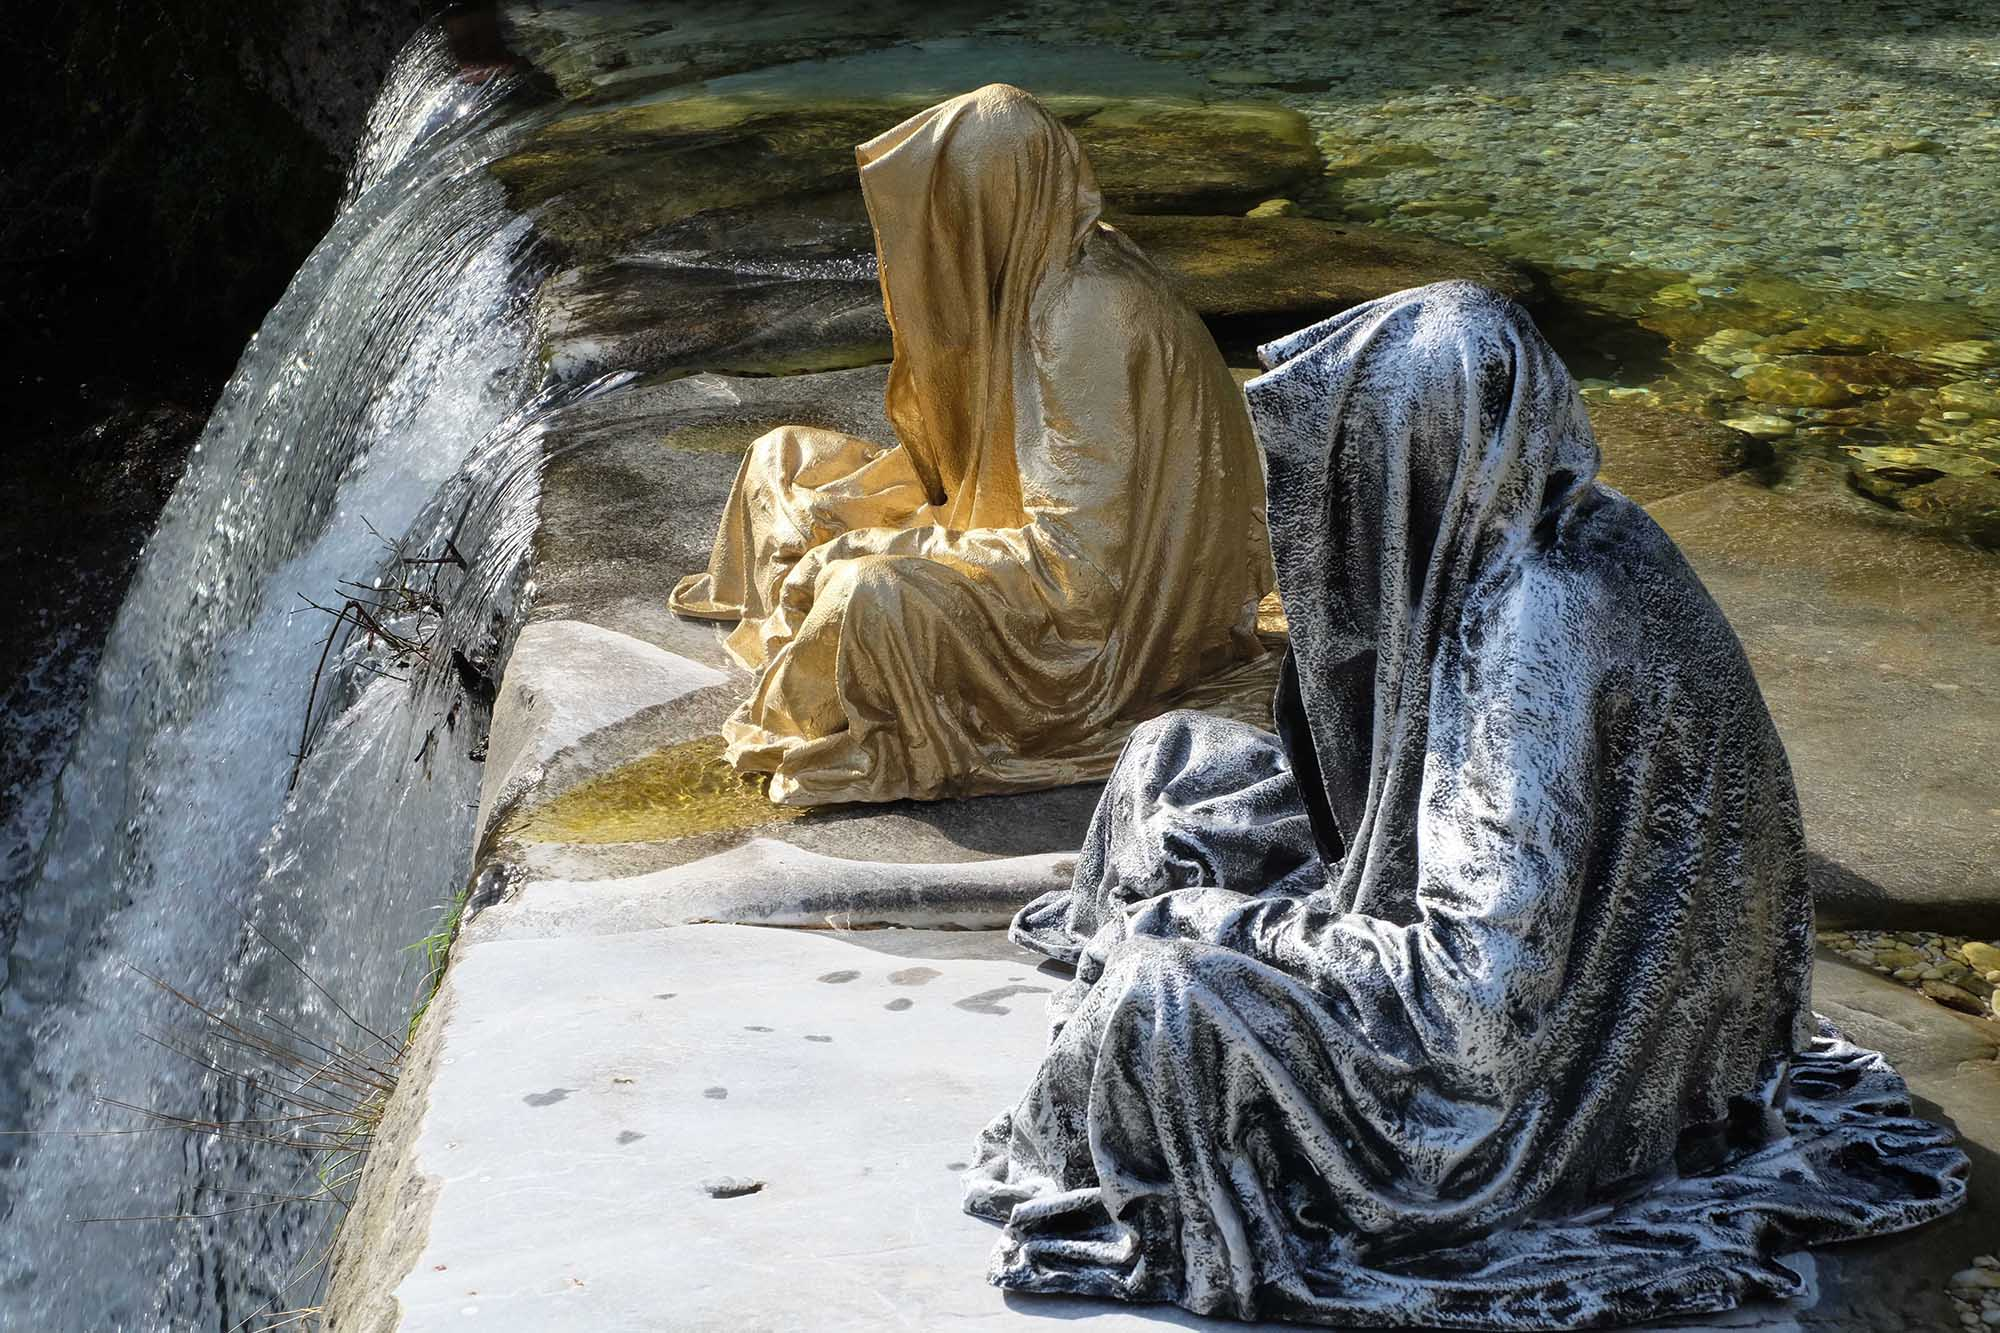 guardians of time manfred kili kielnhofer modern sculpture contemporary fine art design arts statue faceless religion stone marble carrara 1569